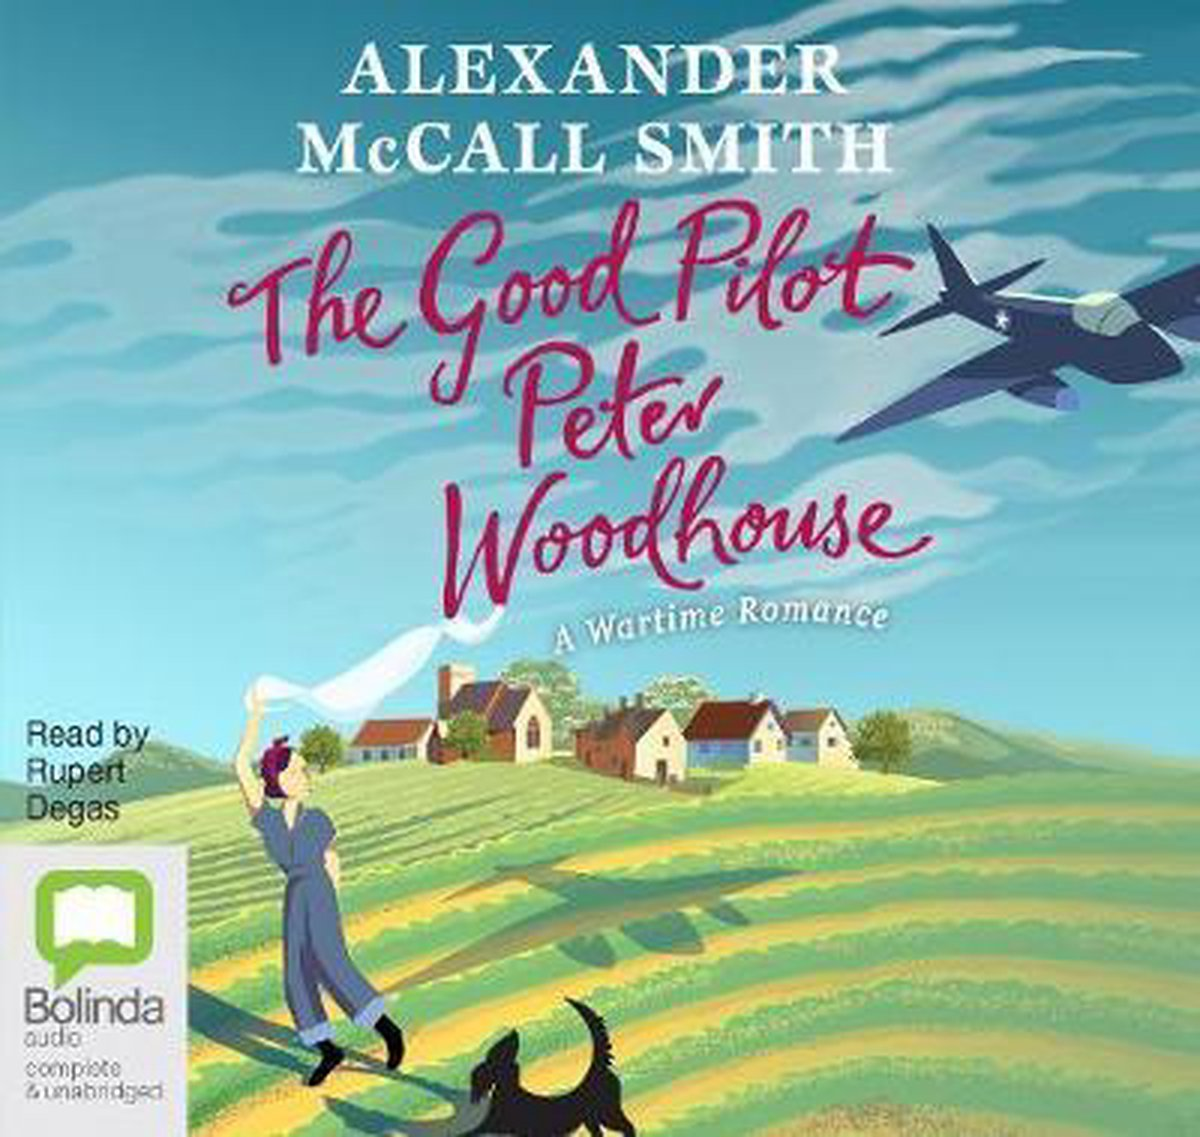 The Good Pilot, Peter Woodhouse